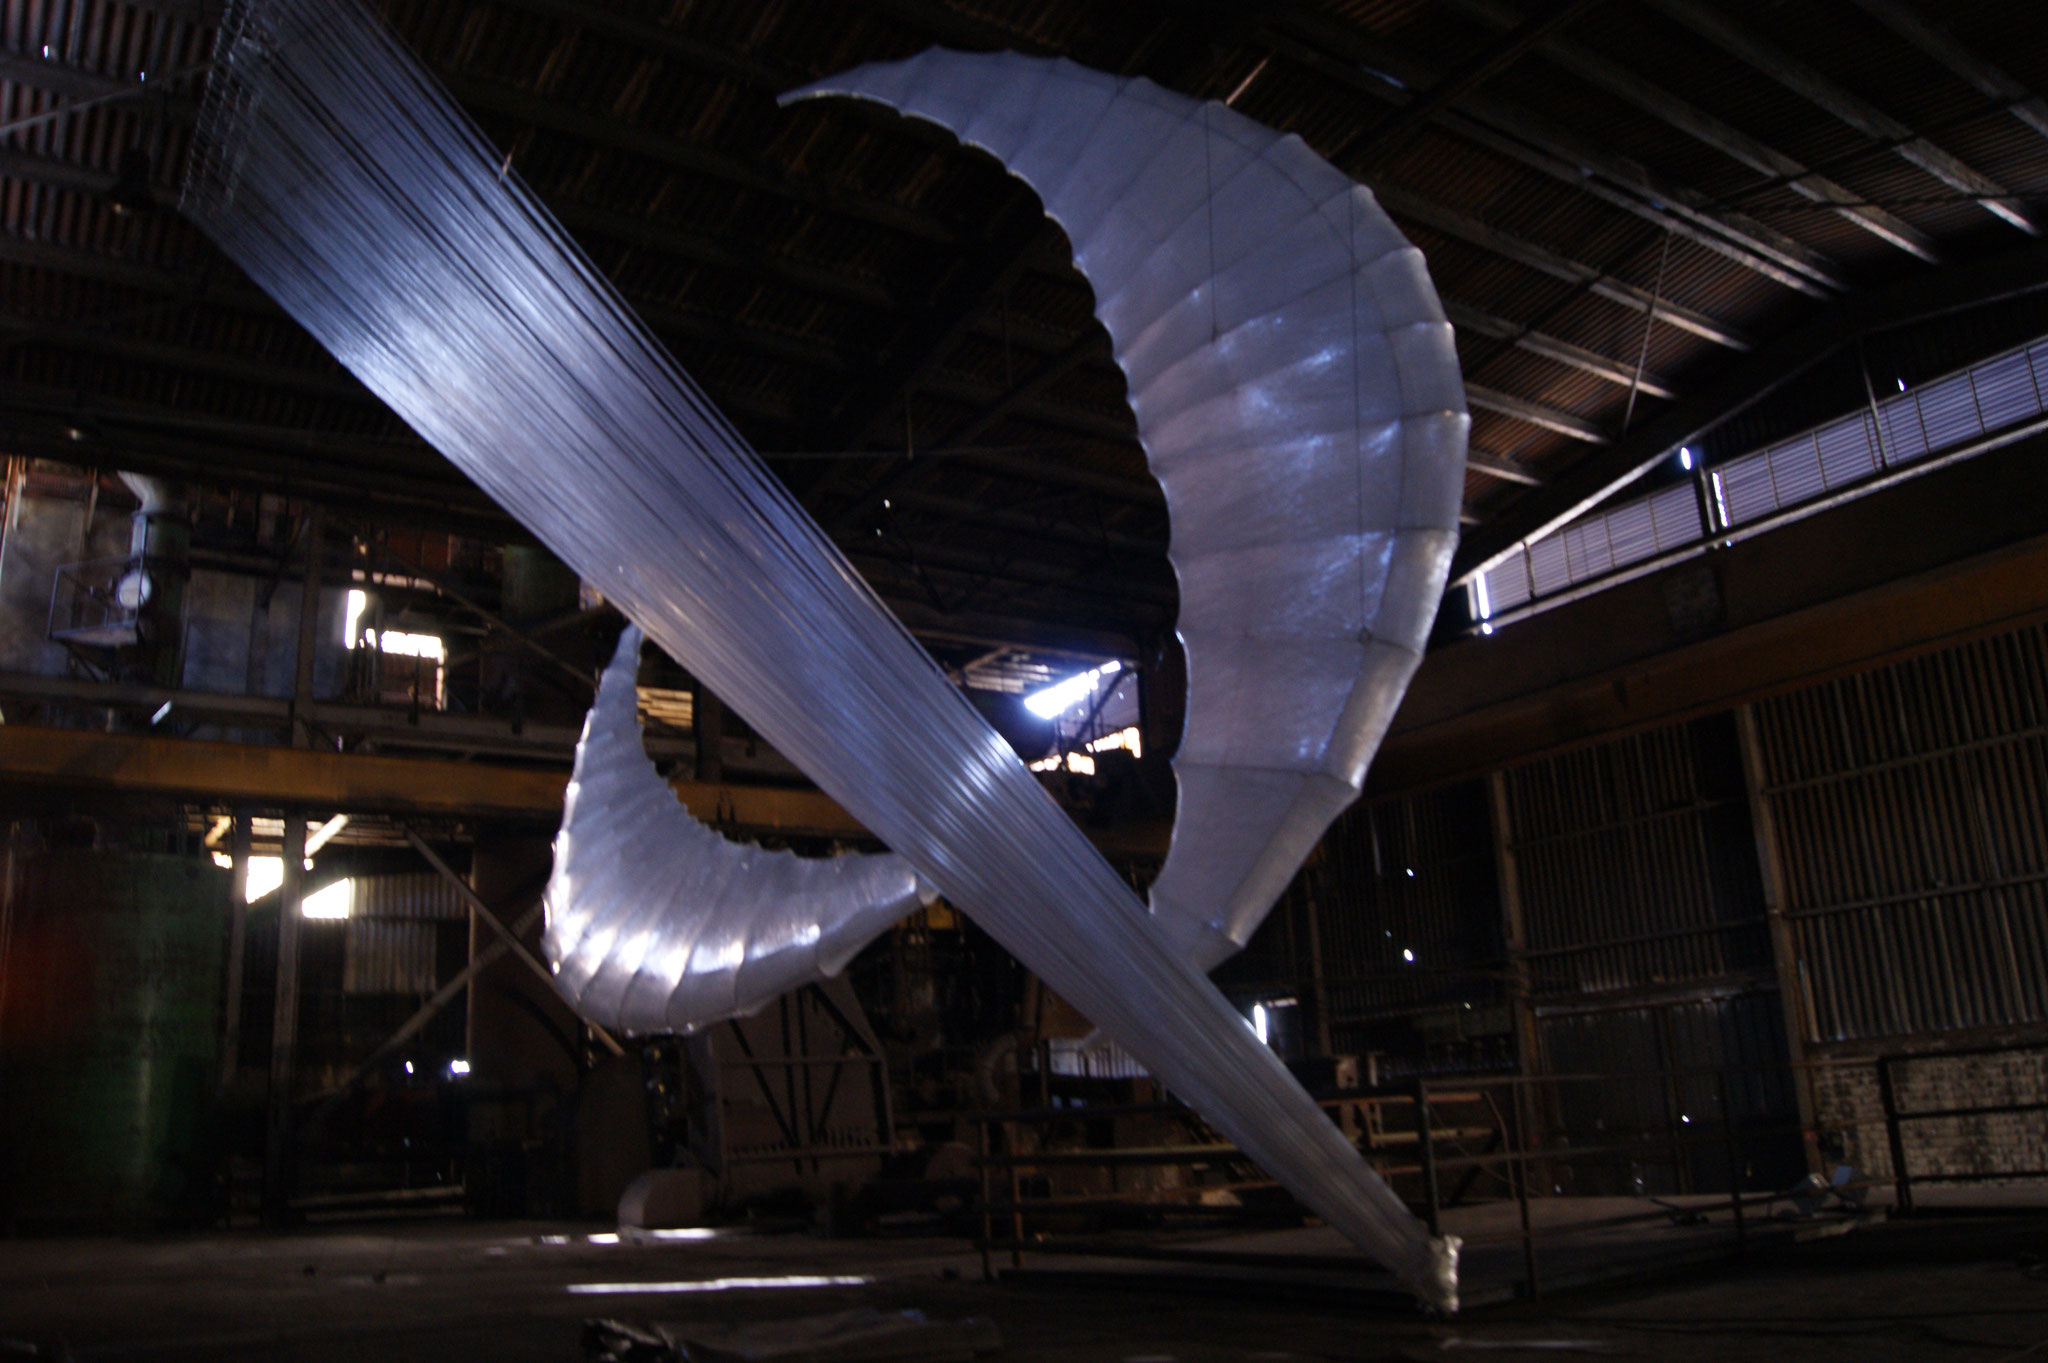 """Wings / Falling"" installation ,14x28x6 m, Germany, Büdelsdorf, NordArt project, 2016"